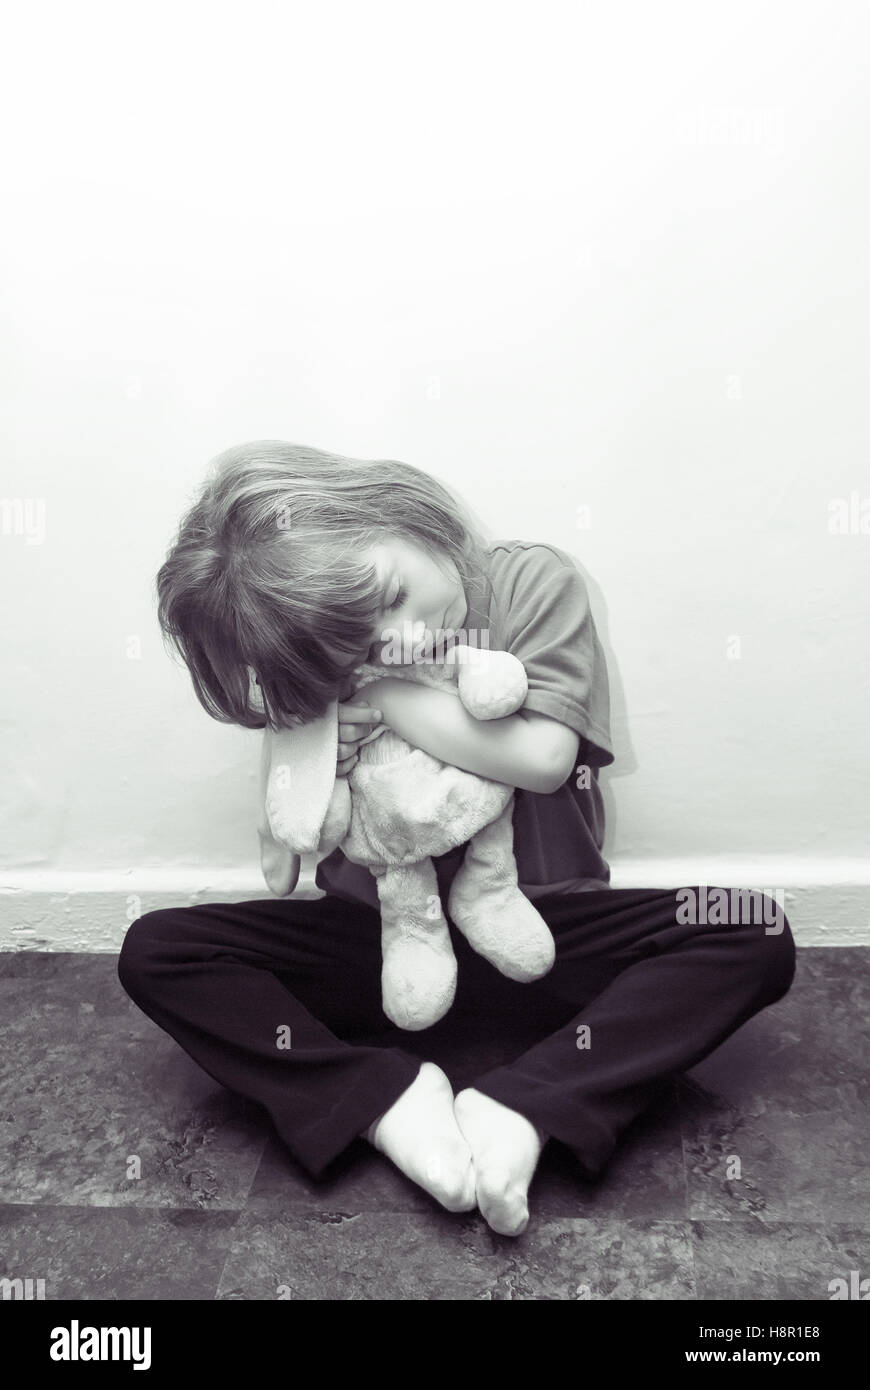 A conceptual image of a very upset little girl, sitting on the floor cuddling a soft toy. - Stock Image